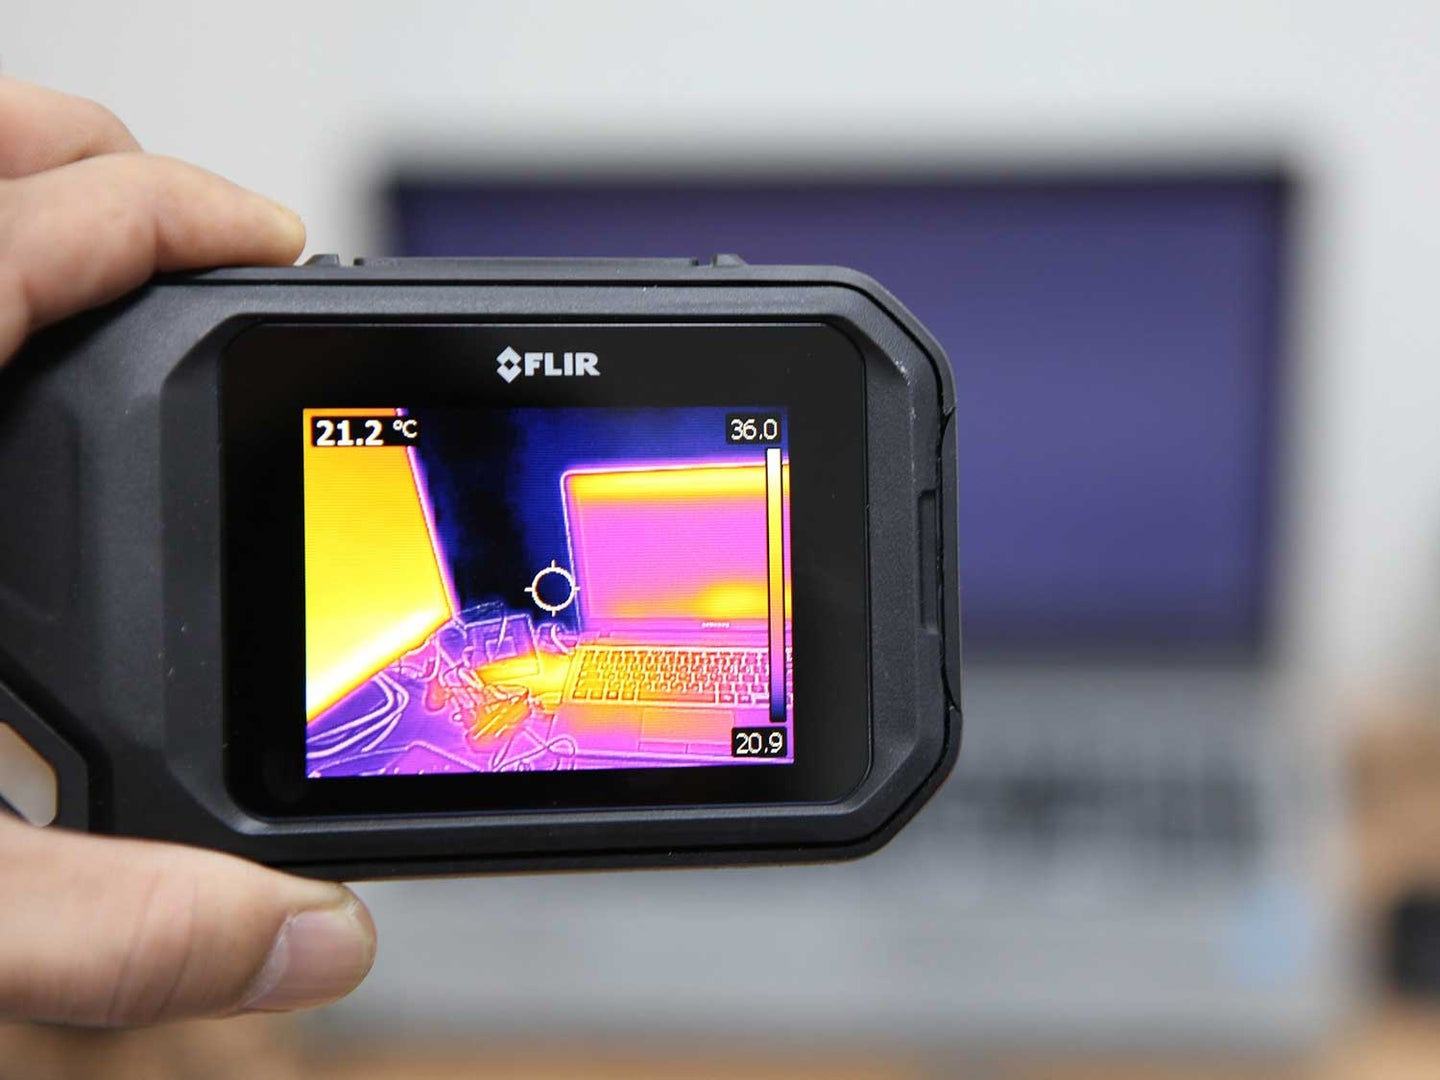 Thermal camera in office pointed at computer.